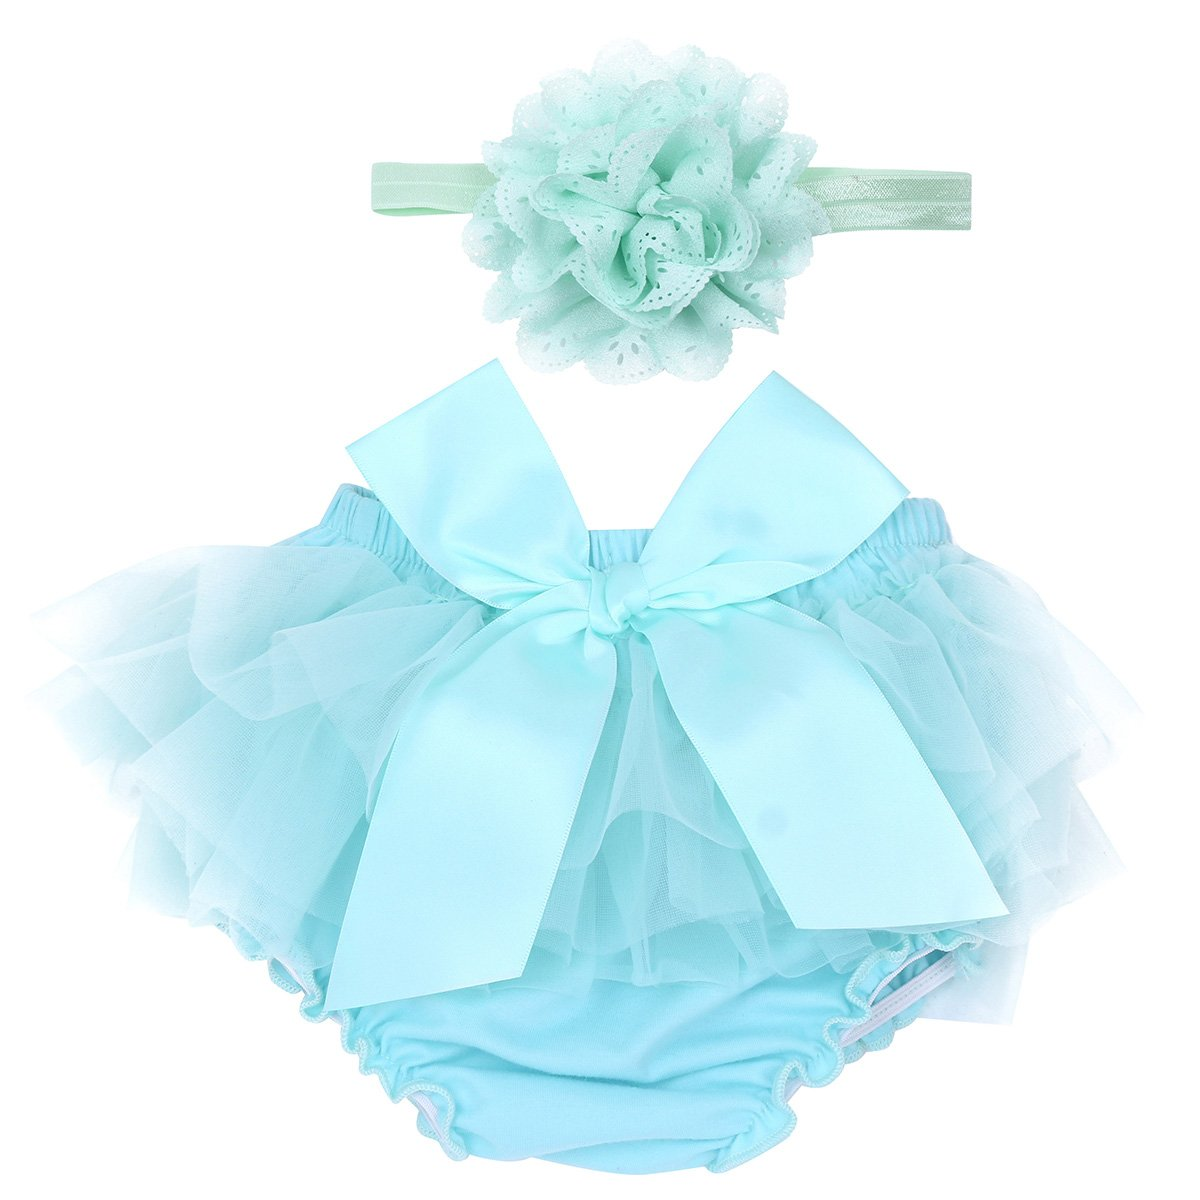 dPois Infant Baby Girls' Tulle Bowknot Ruffle Bloomers Skirts Diaper Cover Flower Headband 2PCS Photography Prop Set